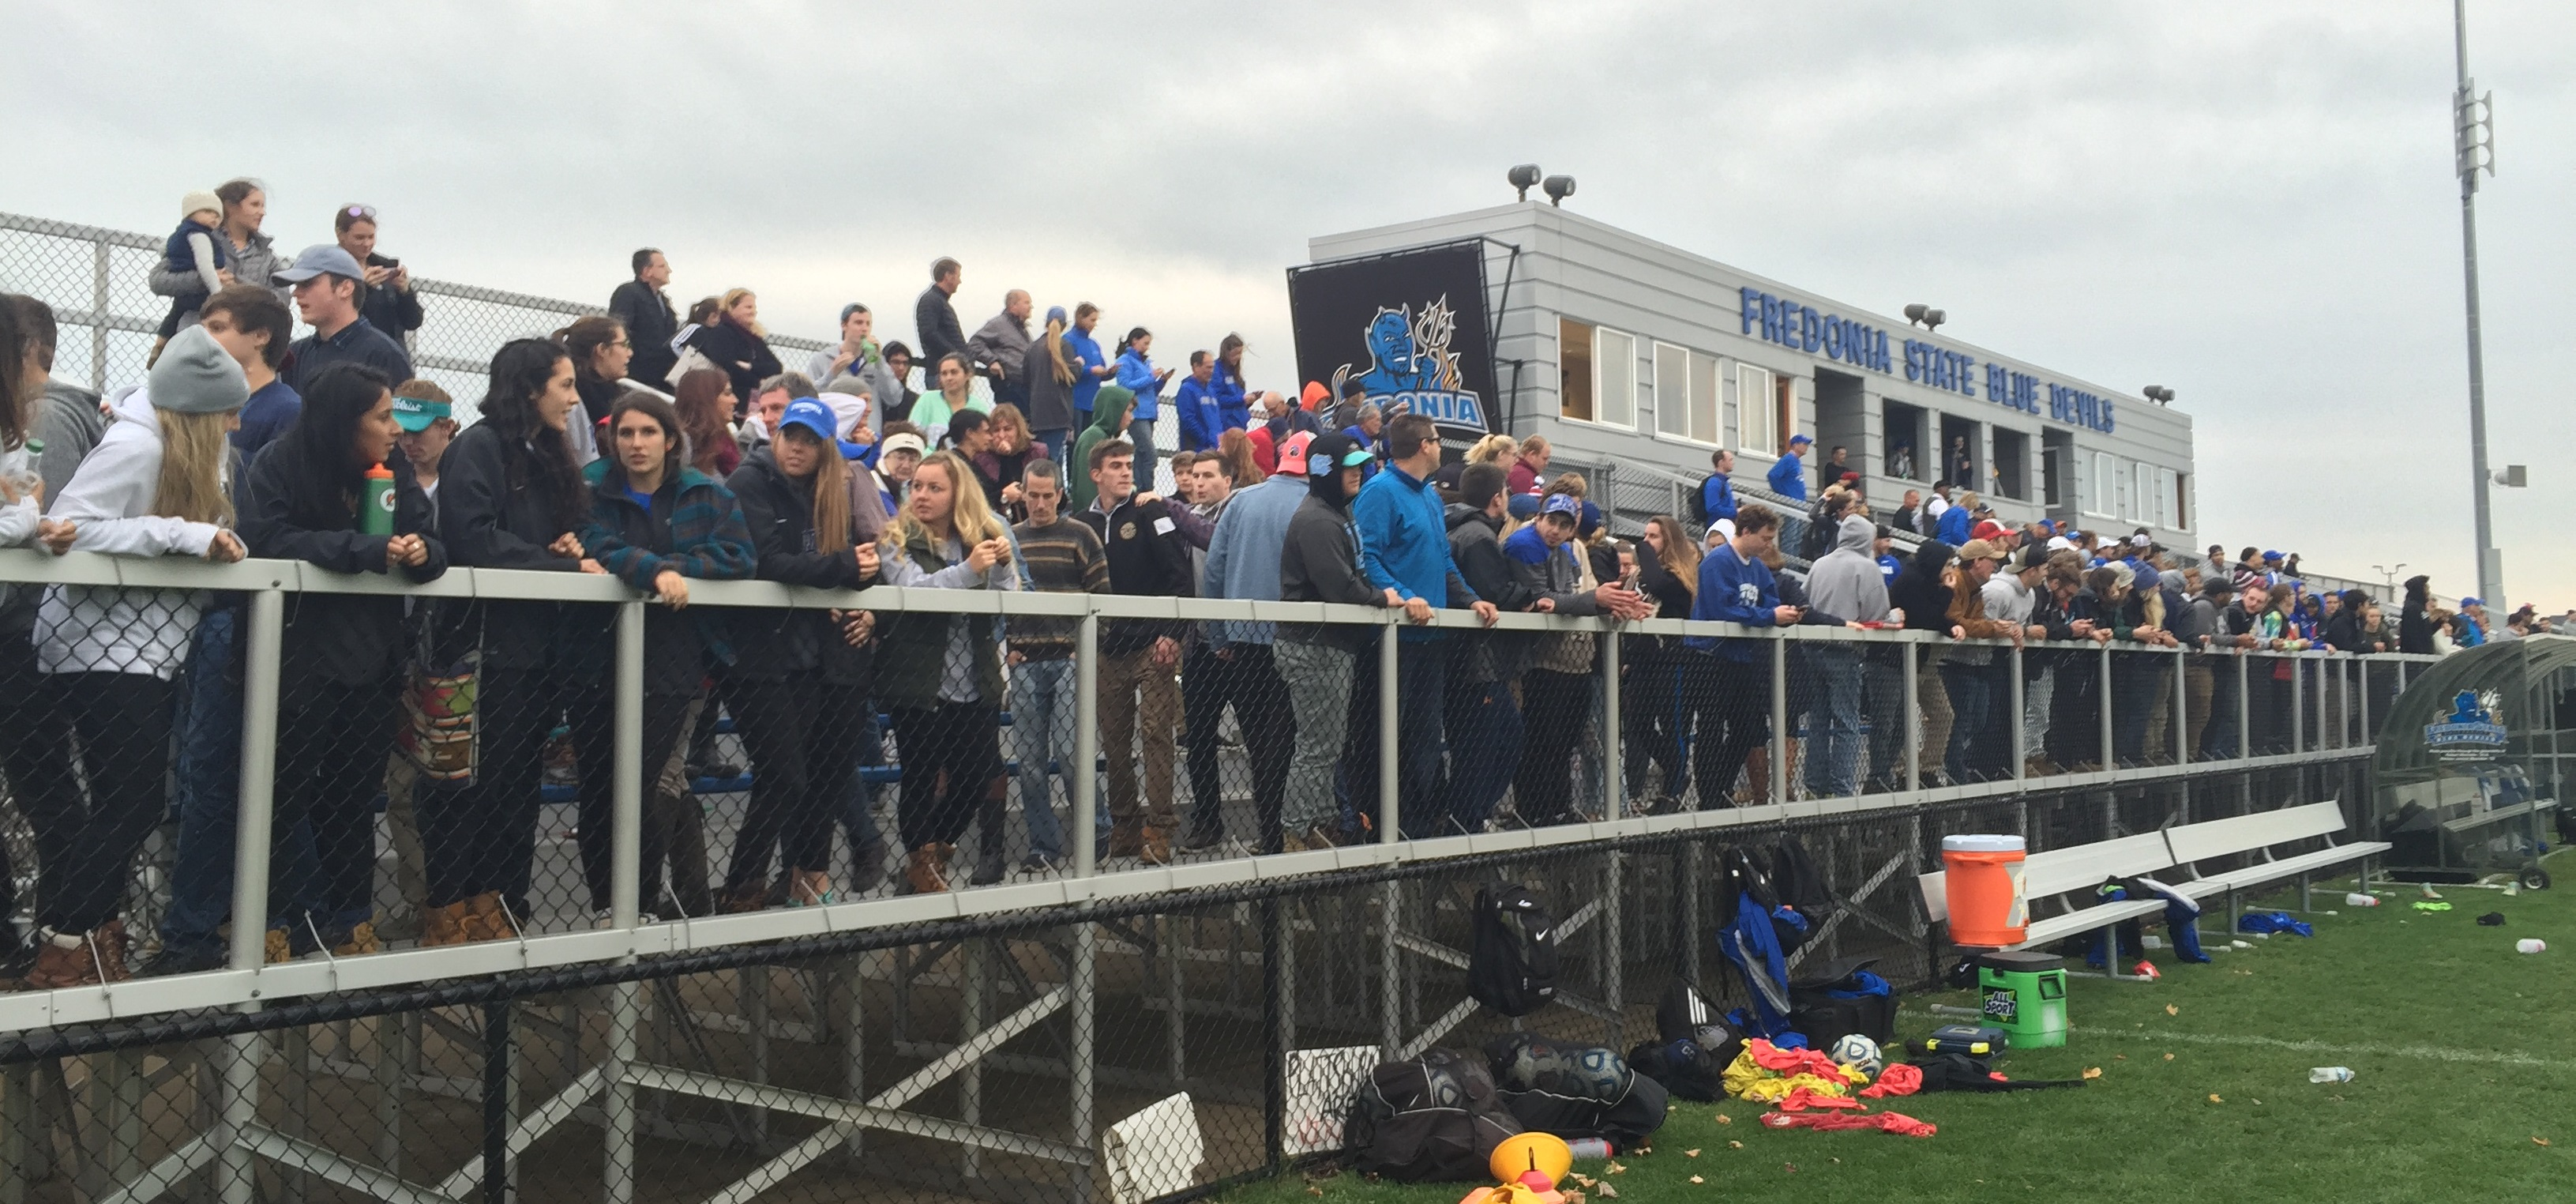 Fredonia drew over 350 people to watch the SUNYAC quarterfinal at home against Plattsburgh. (Ben Tsujimoto/Buffalo News)